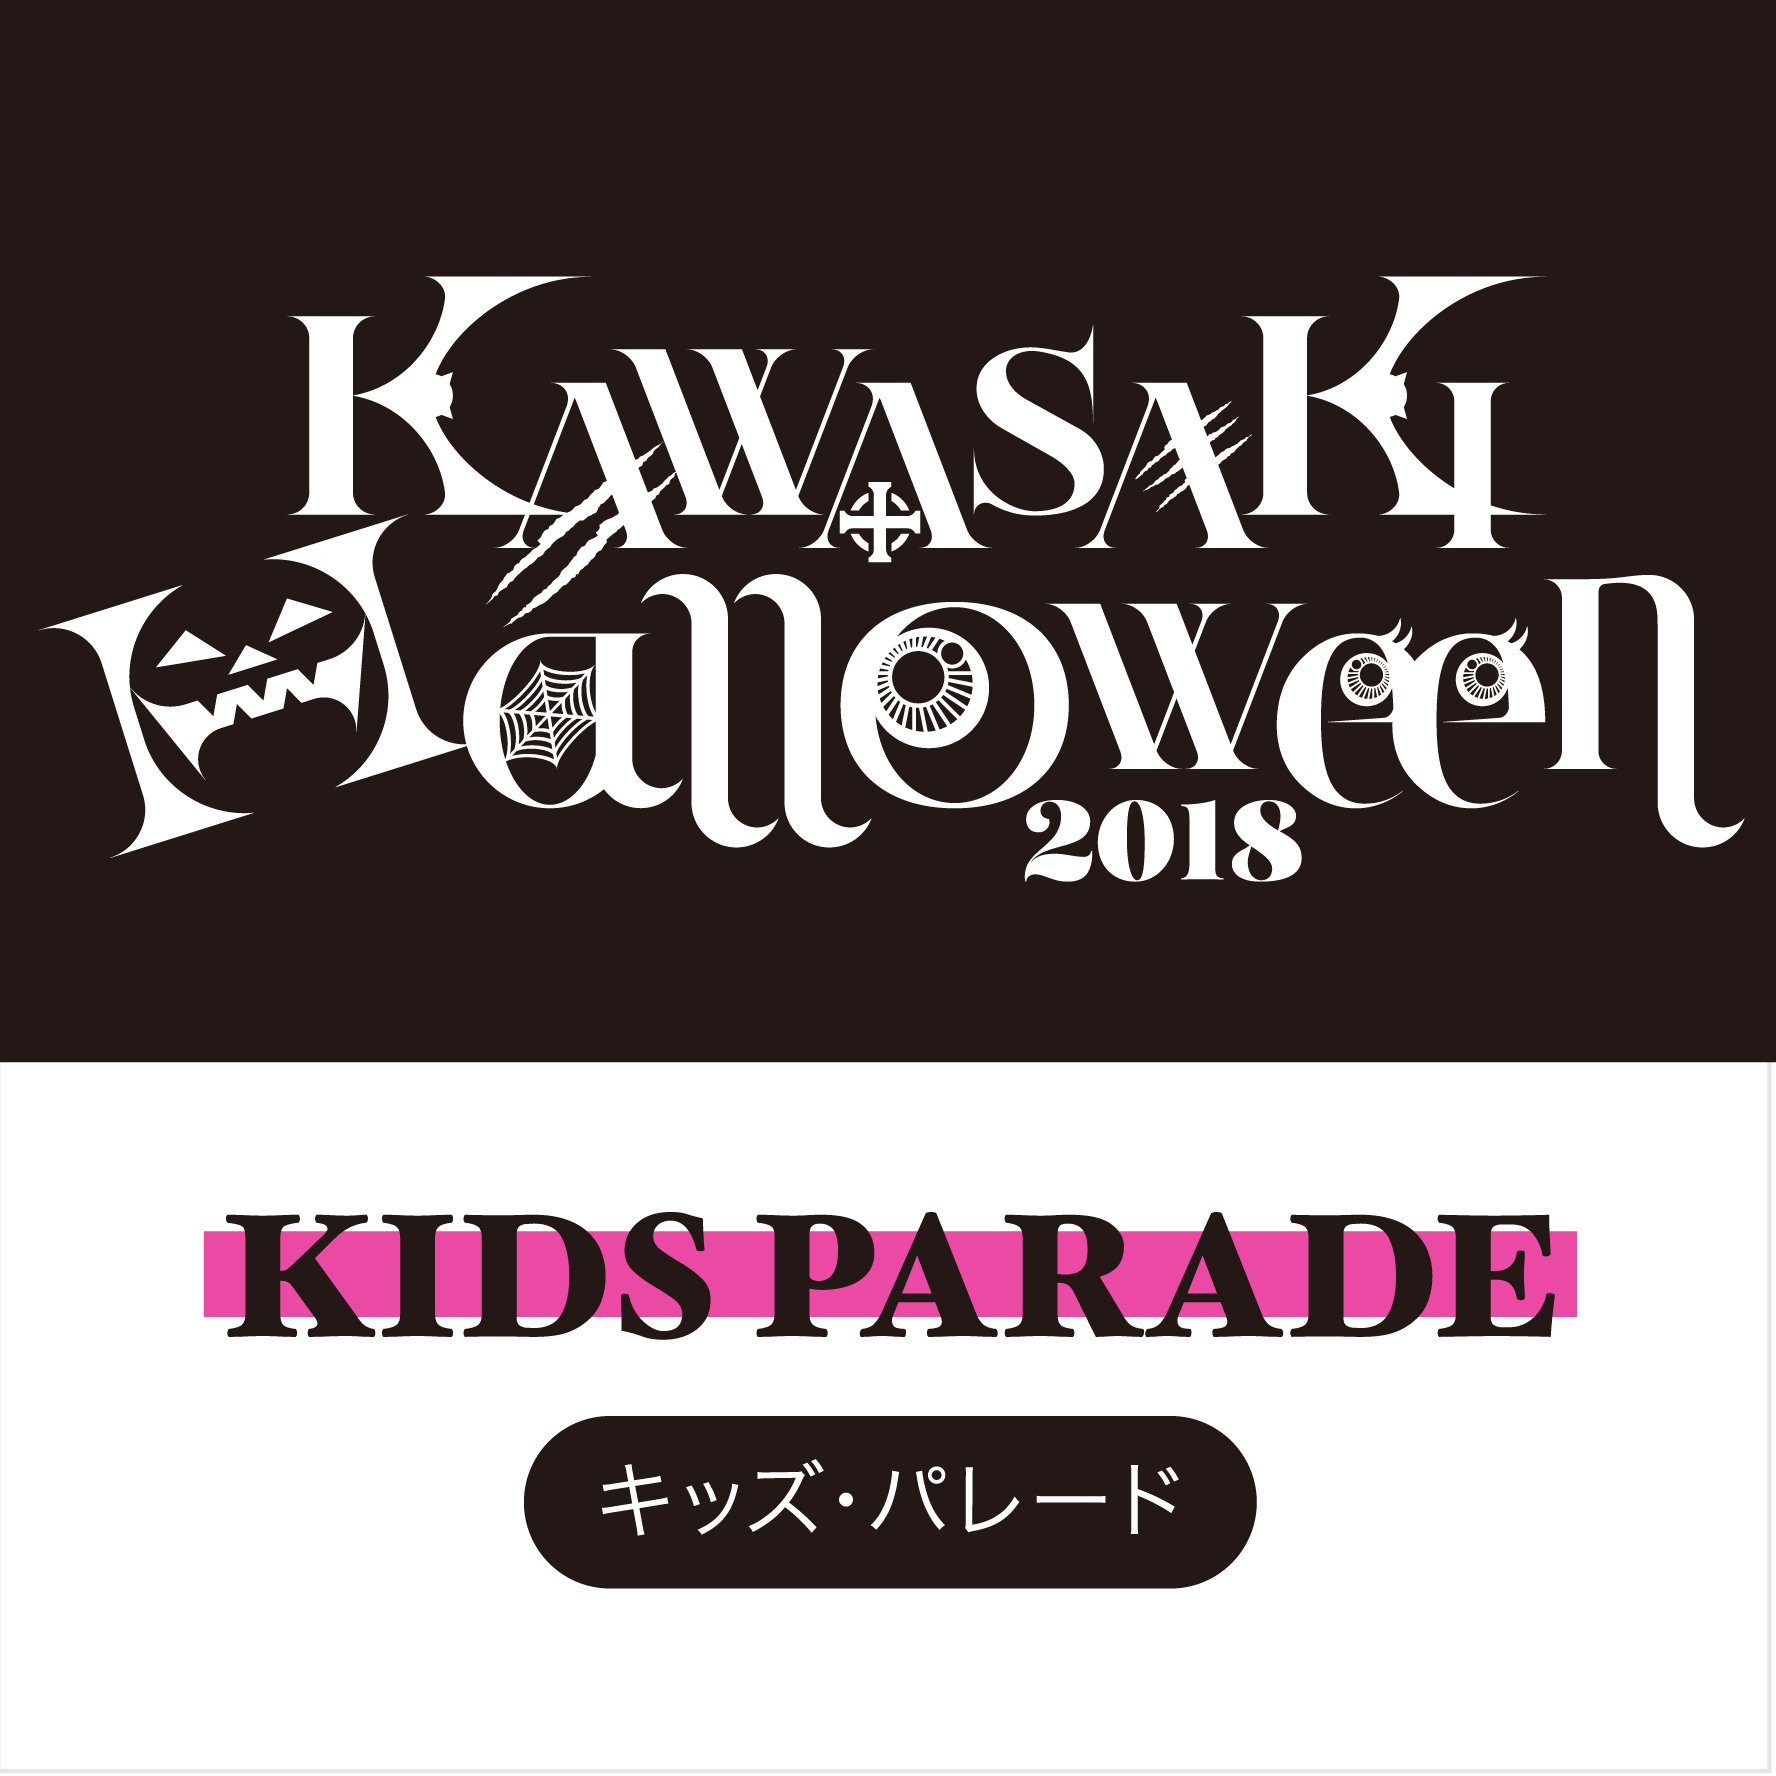 KAWASAKI Halloween 2018 キッズ・パレード Supported by 横浜トヨペット